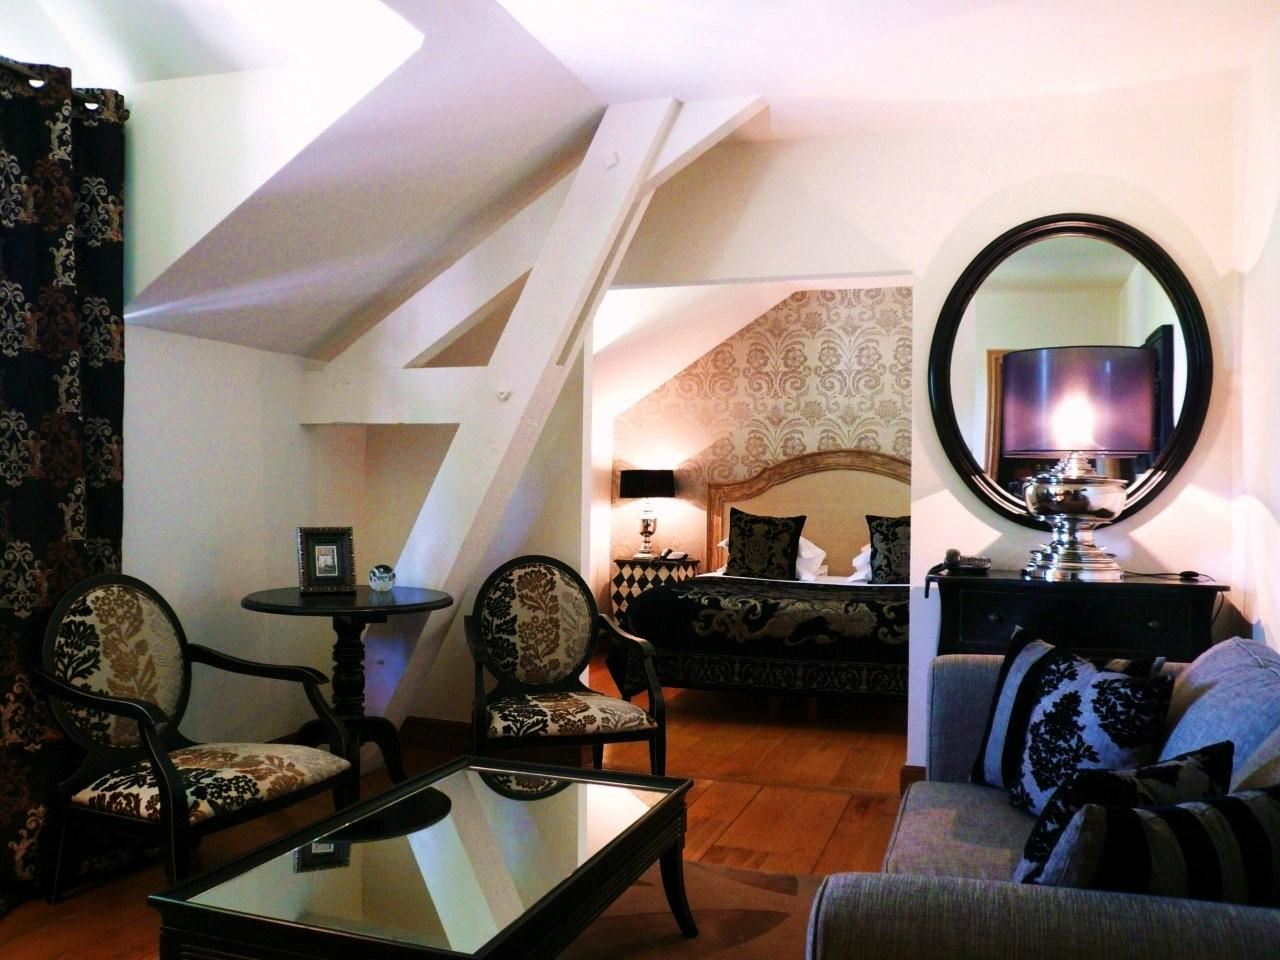 Beaumanoir - Small Luxury Boutique Hotel